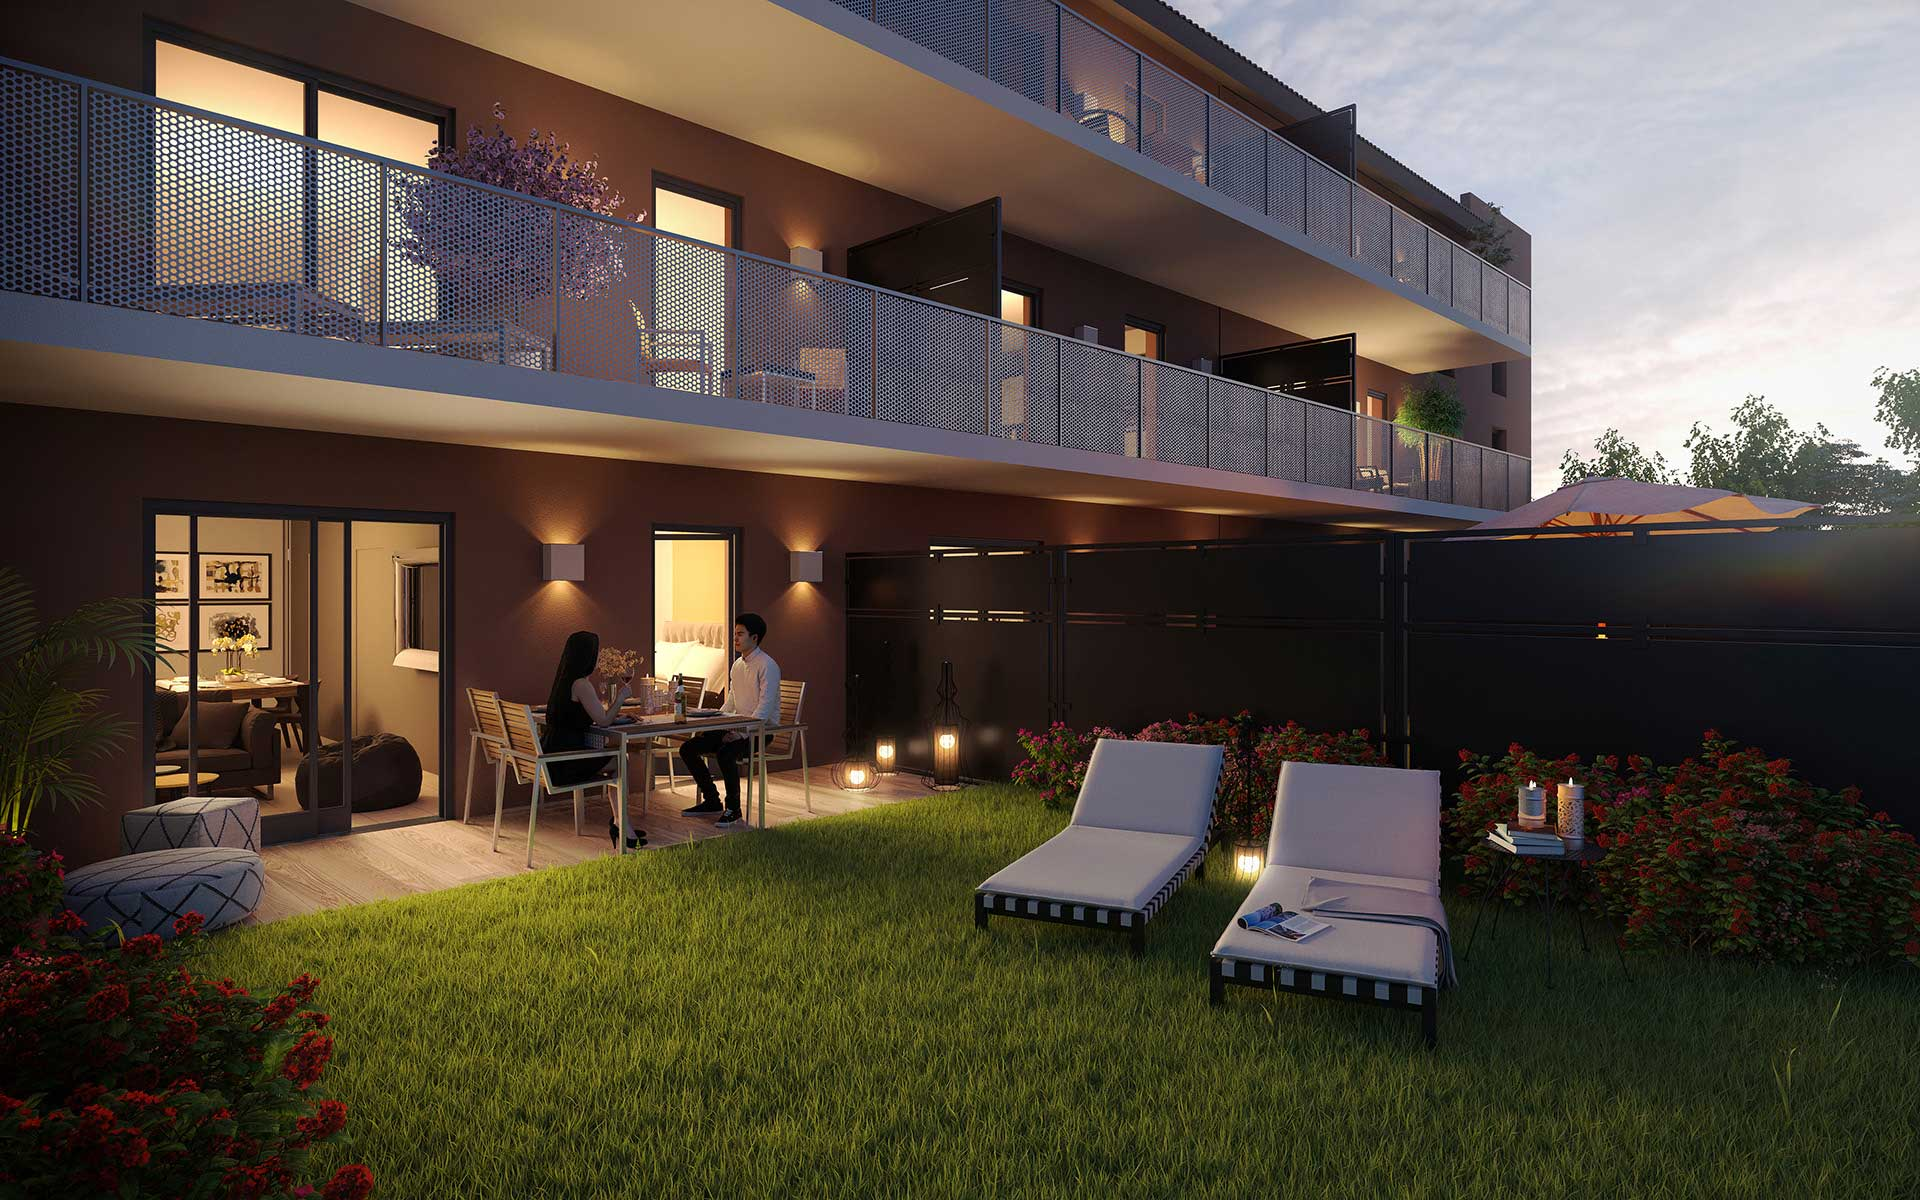 3D Perspective Of A Building And A Night Garden   Real Estate Promotion.